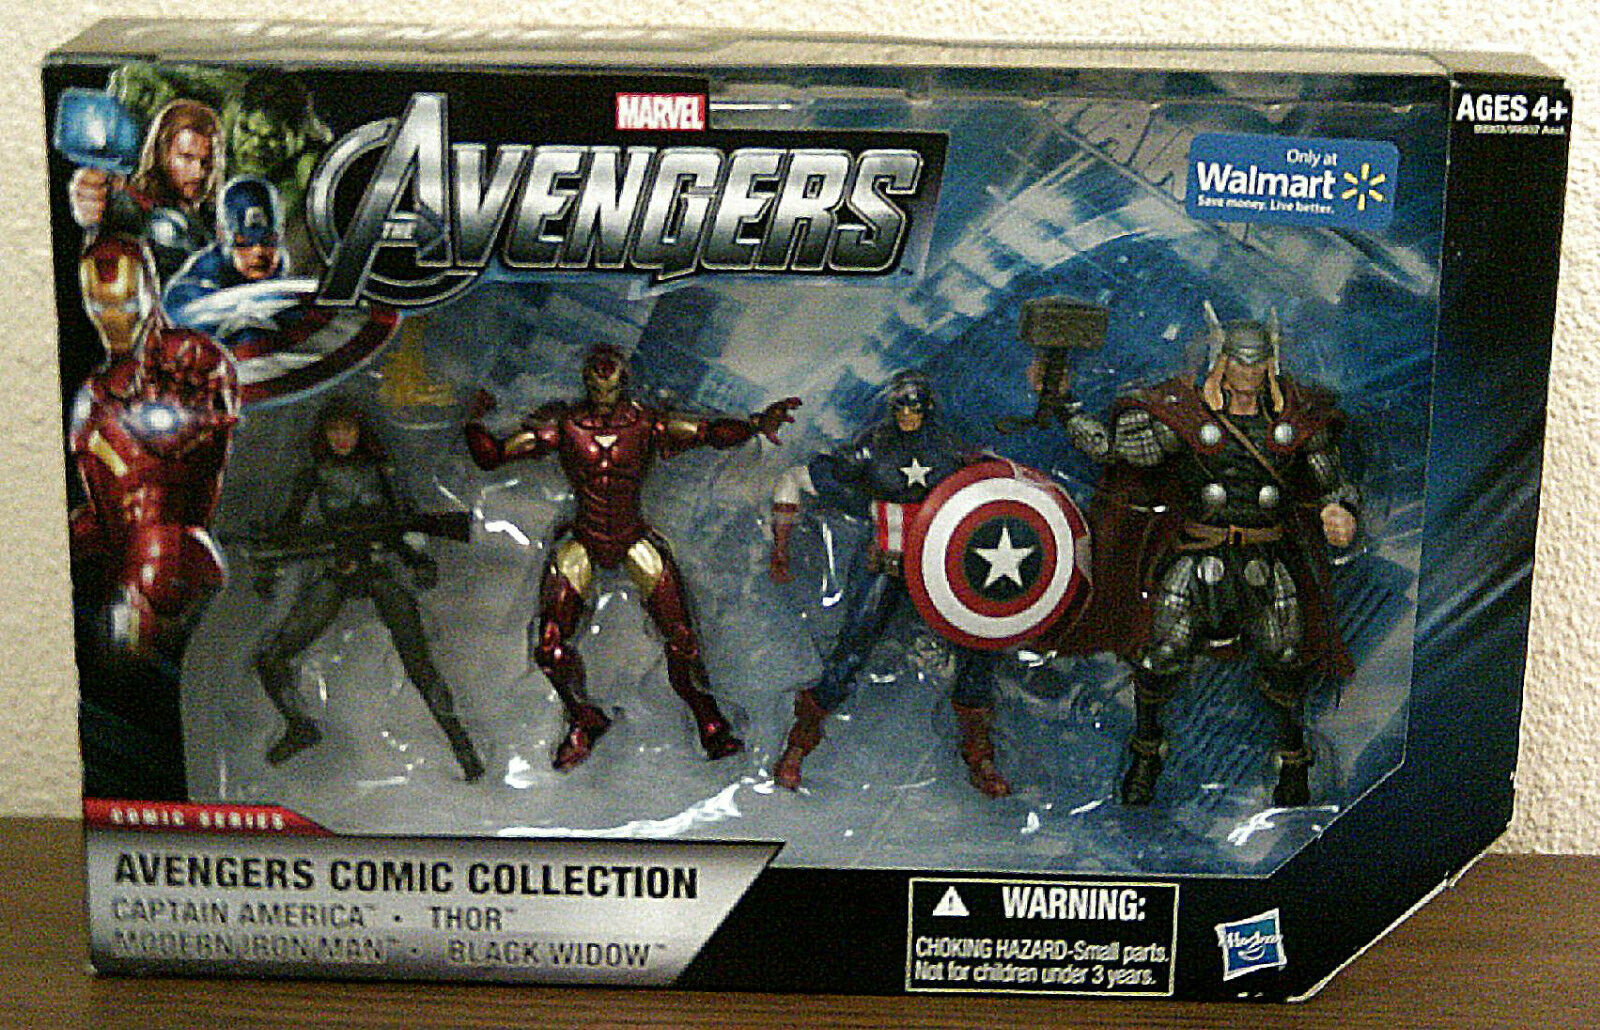 AVENGERS COMIC COLLECTION ACTION FIGURES - 4 PAK - BY HASBRO